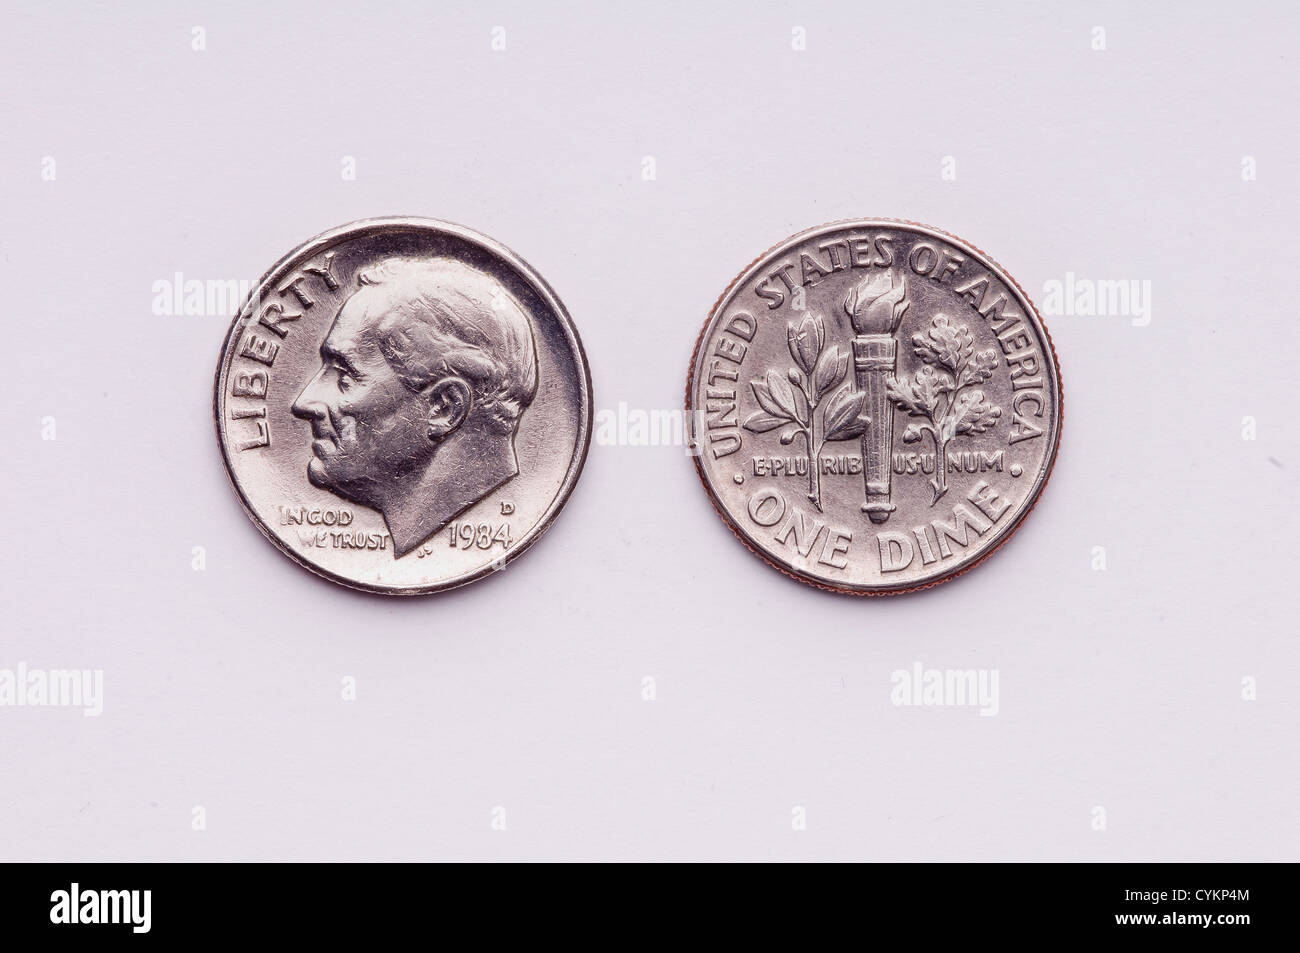 A United states  coin - Stock Image